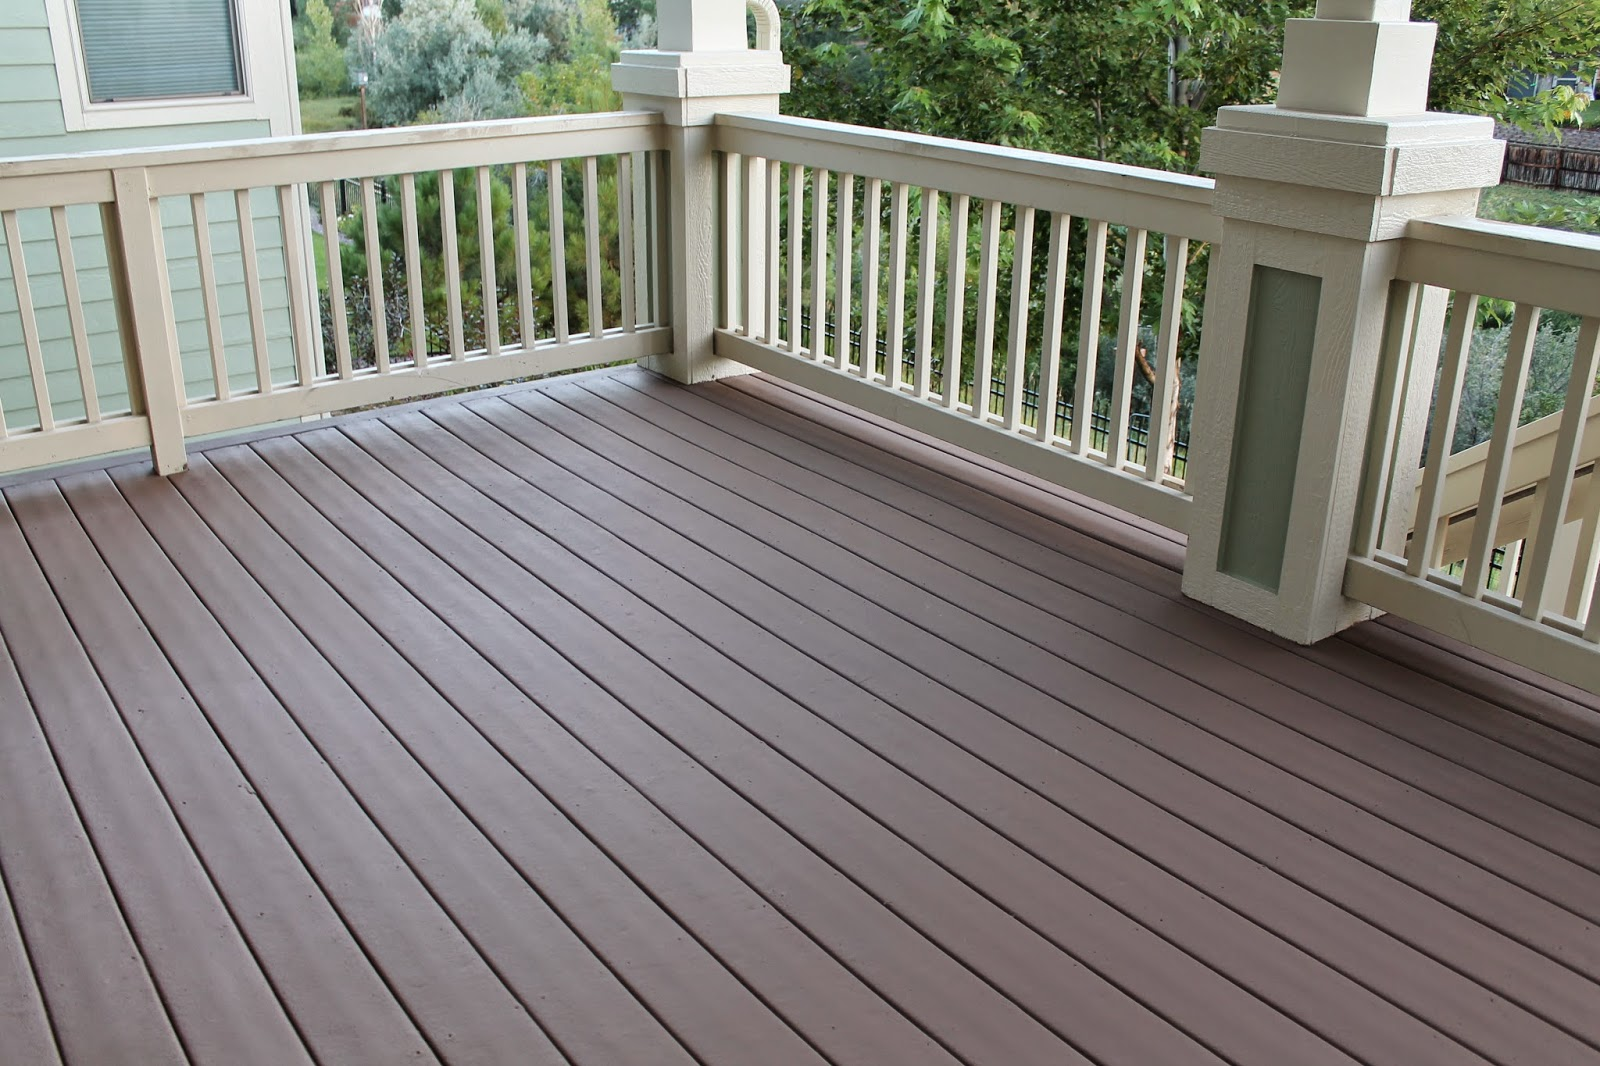 Deck paint home depot home painting ideas for Deck paint colors home depot